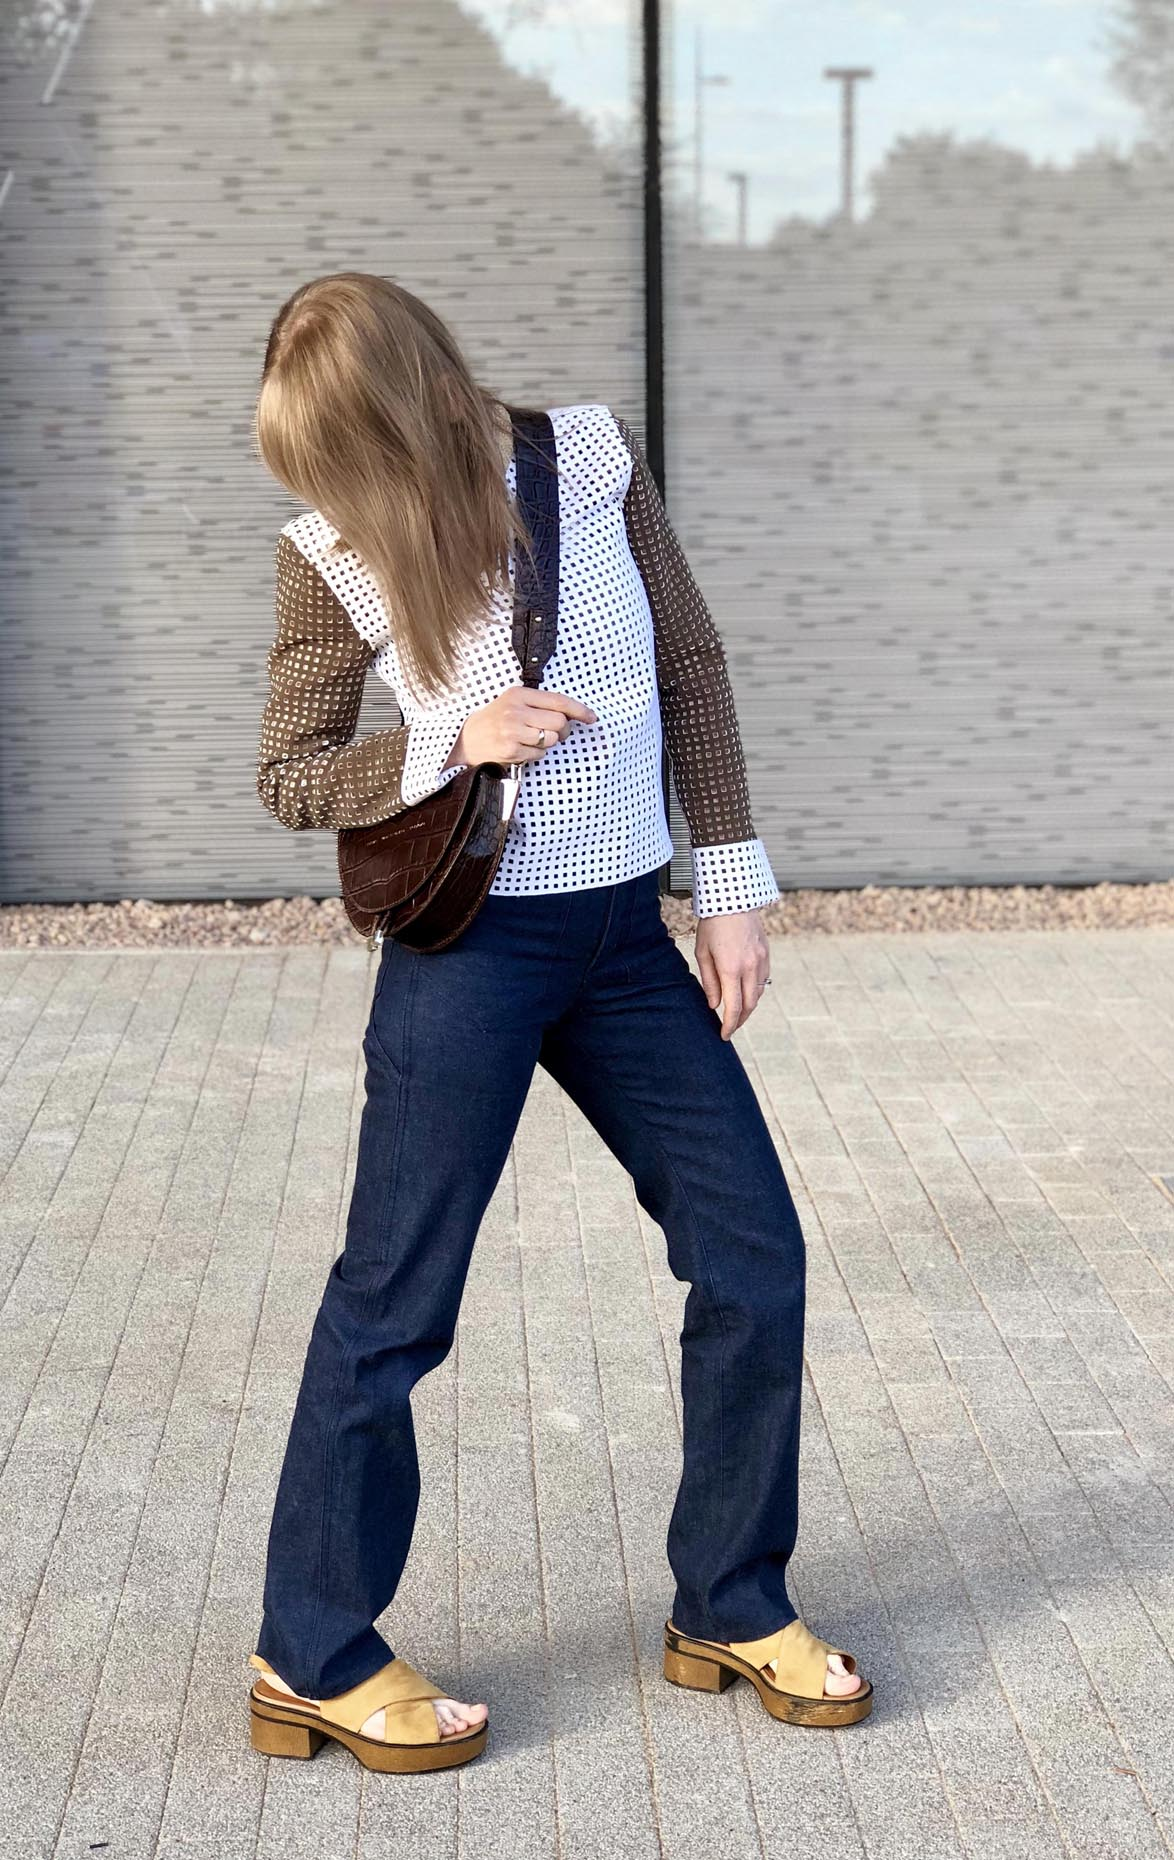 flared acne jeans, jw anderson top, saddle bag zofia chylak, vagabond shoes by fashion art media